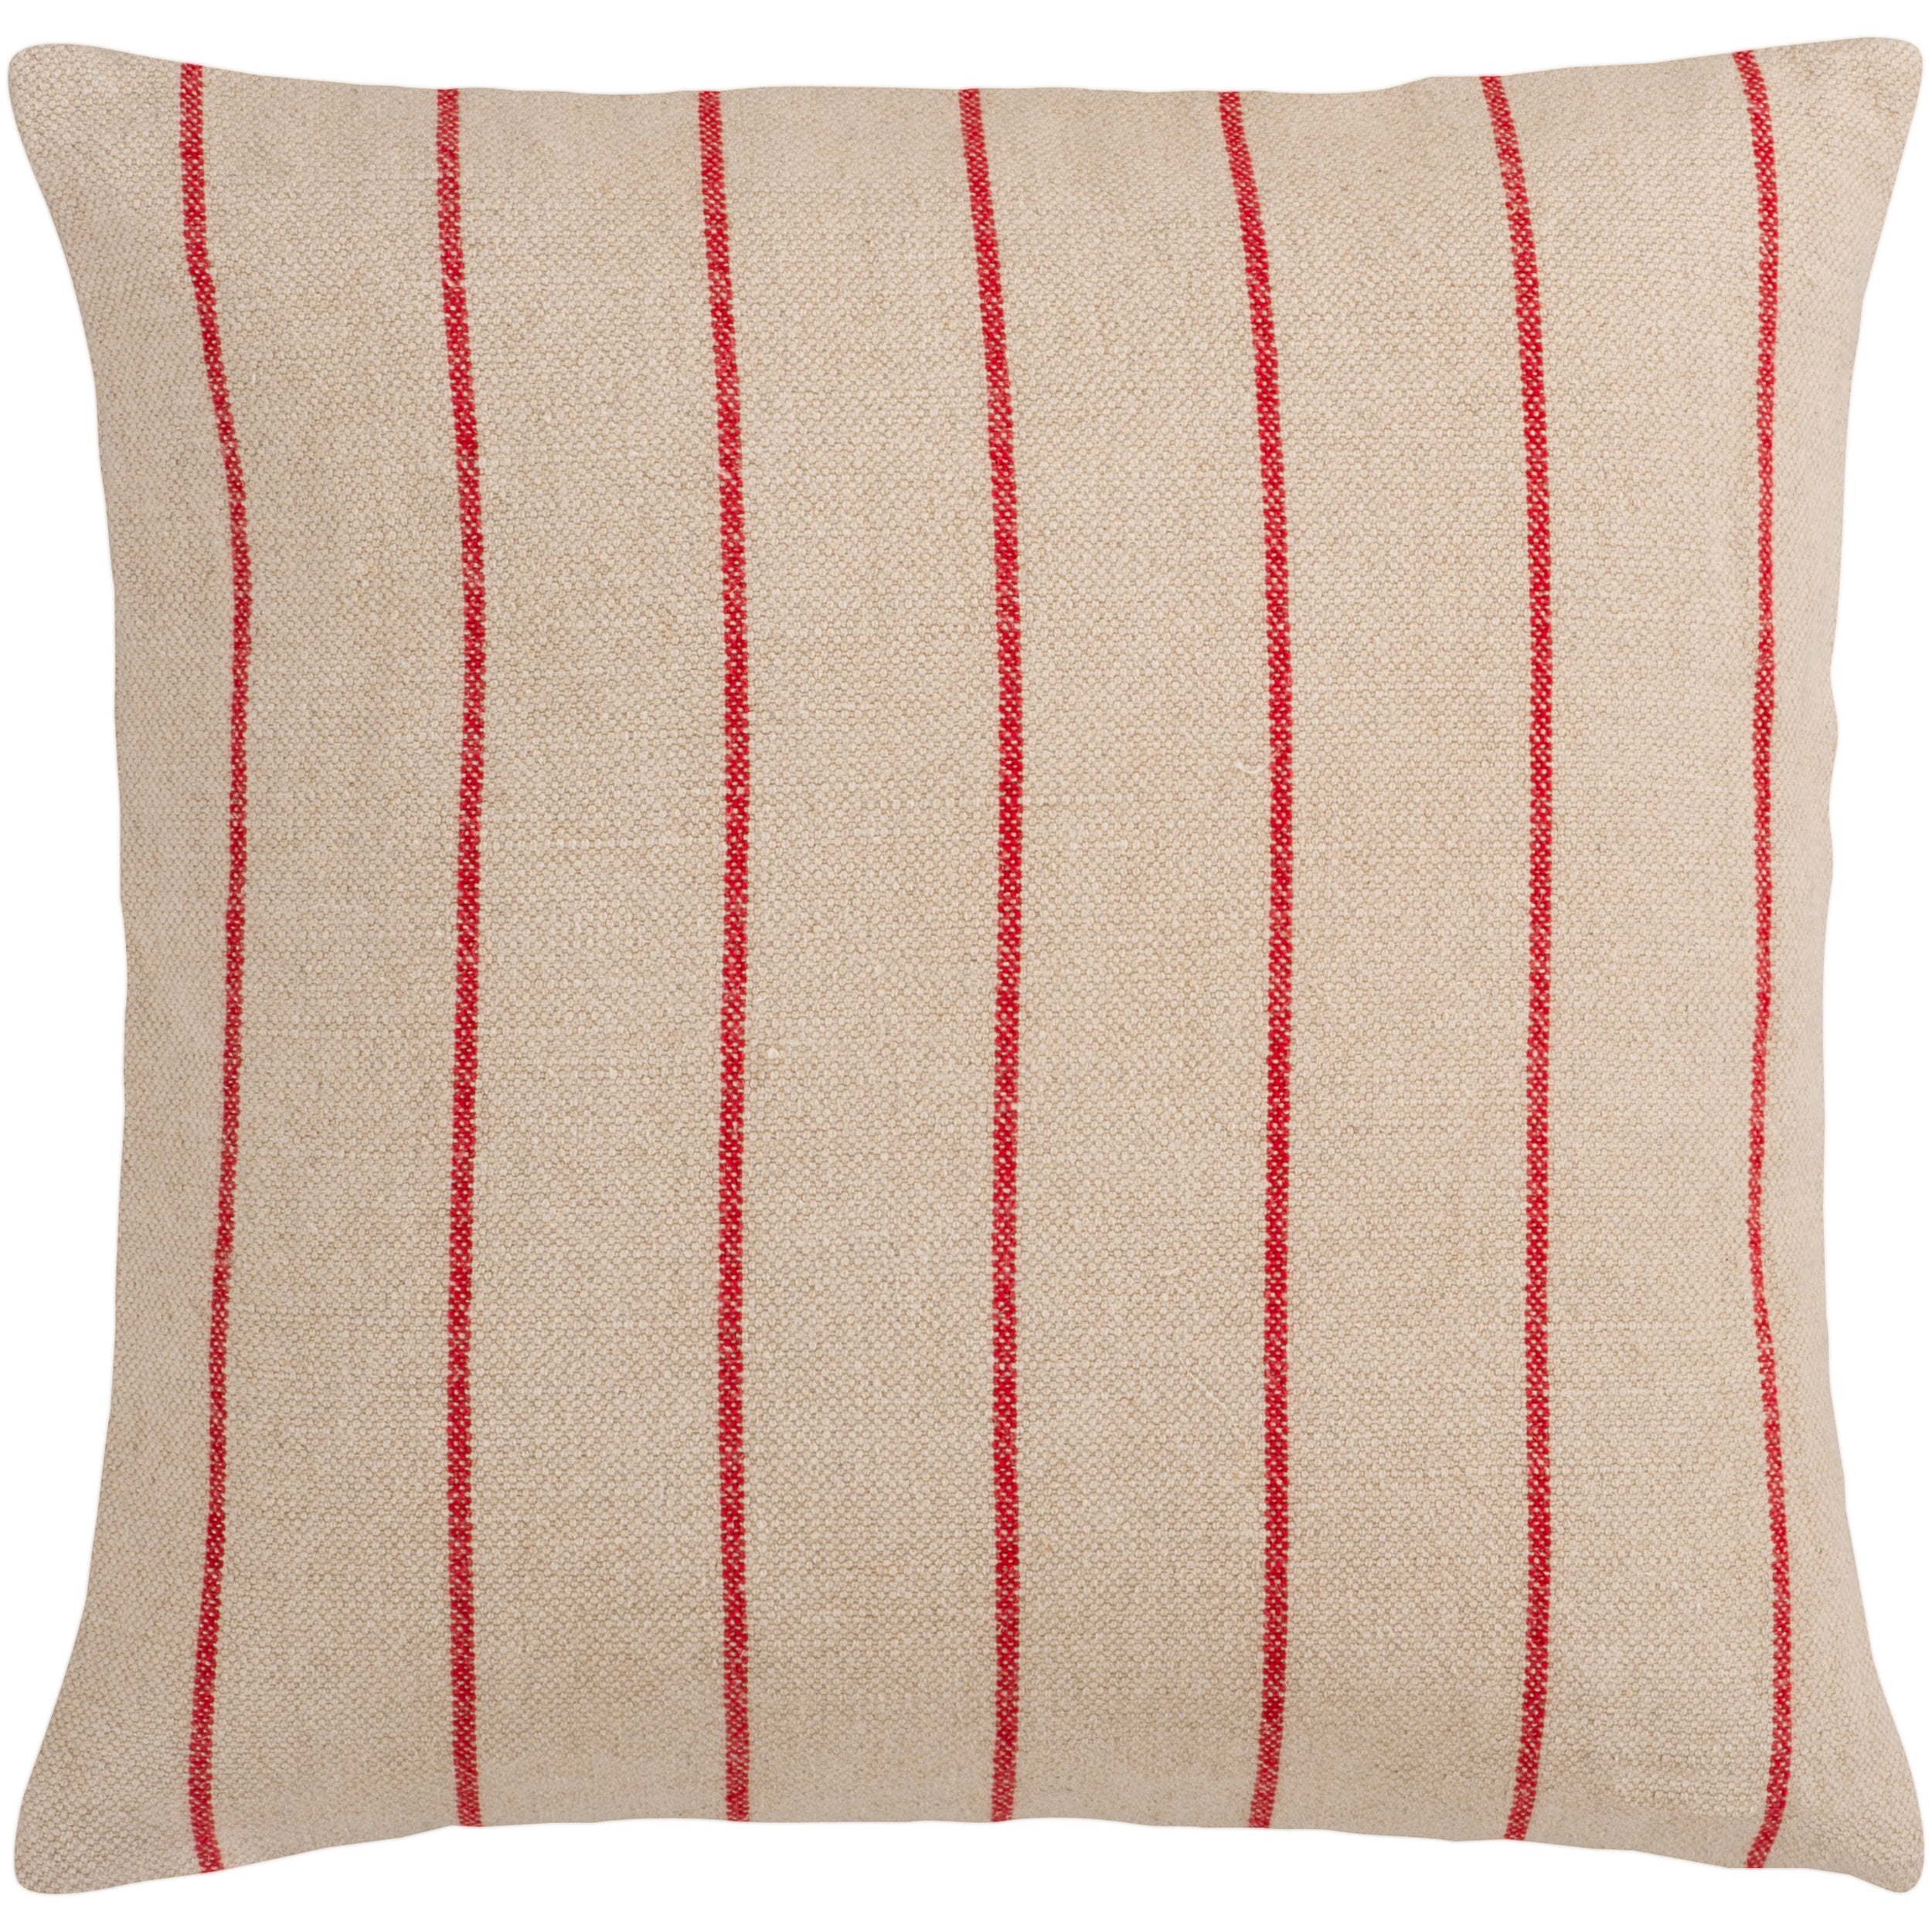 Decorative Liber 18-inch Down Pillow